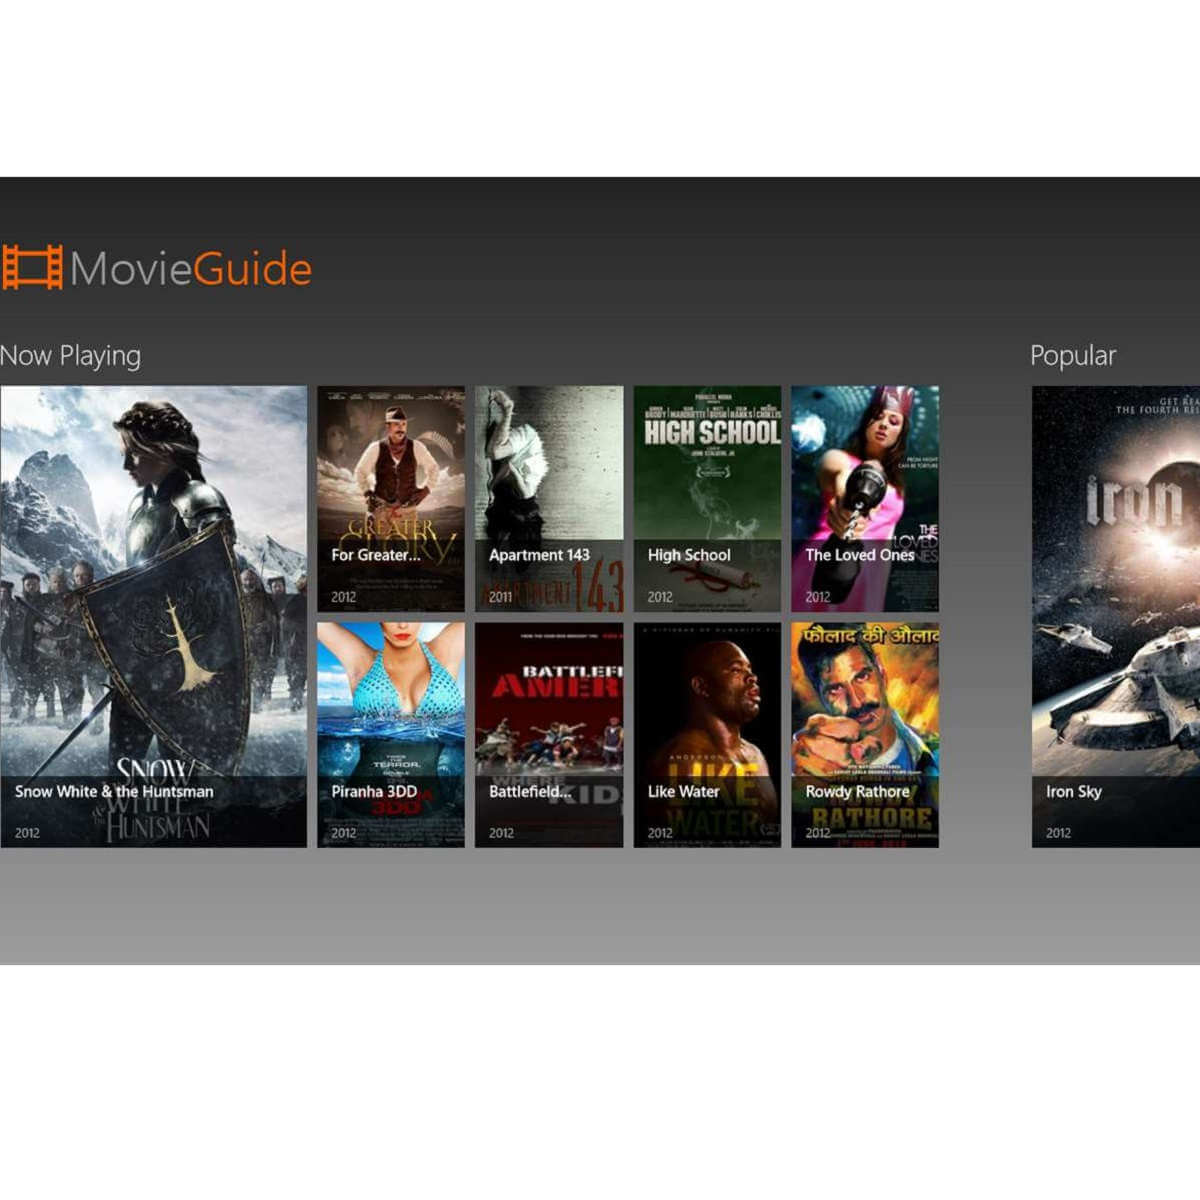 Download Movie Guide app to turn your PC into a movie database